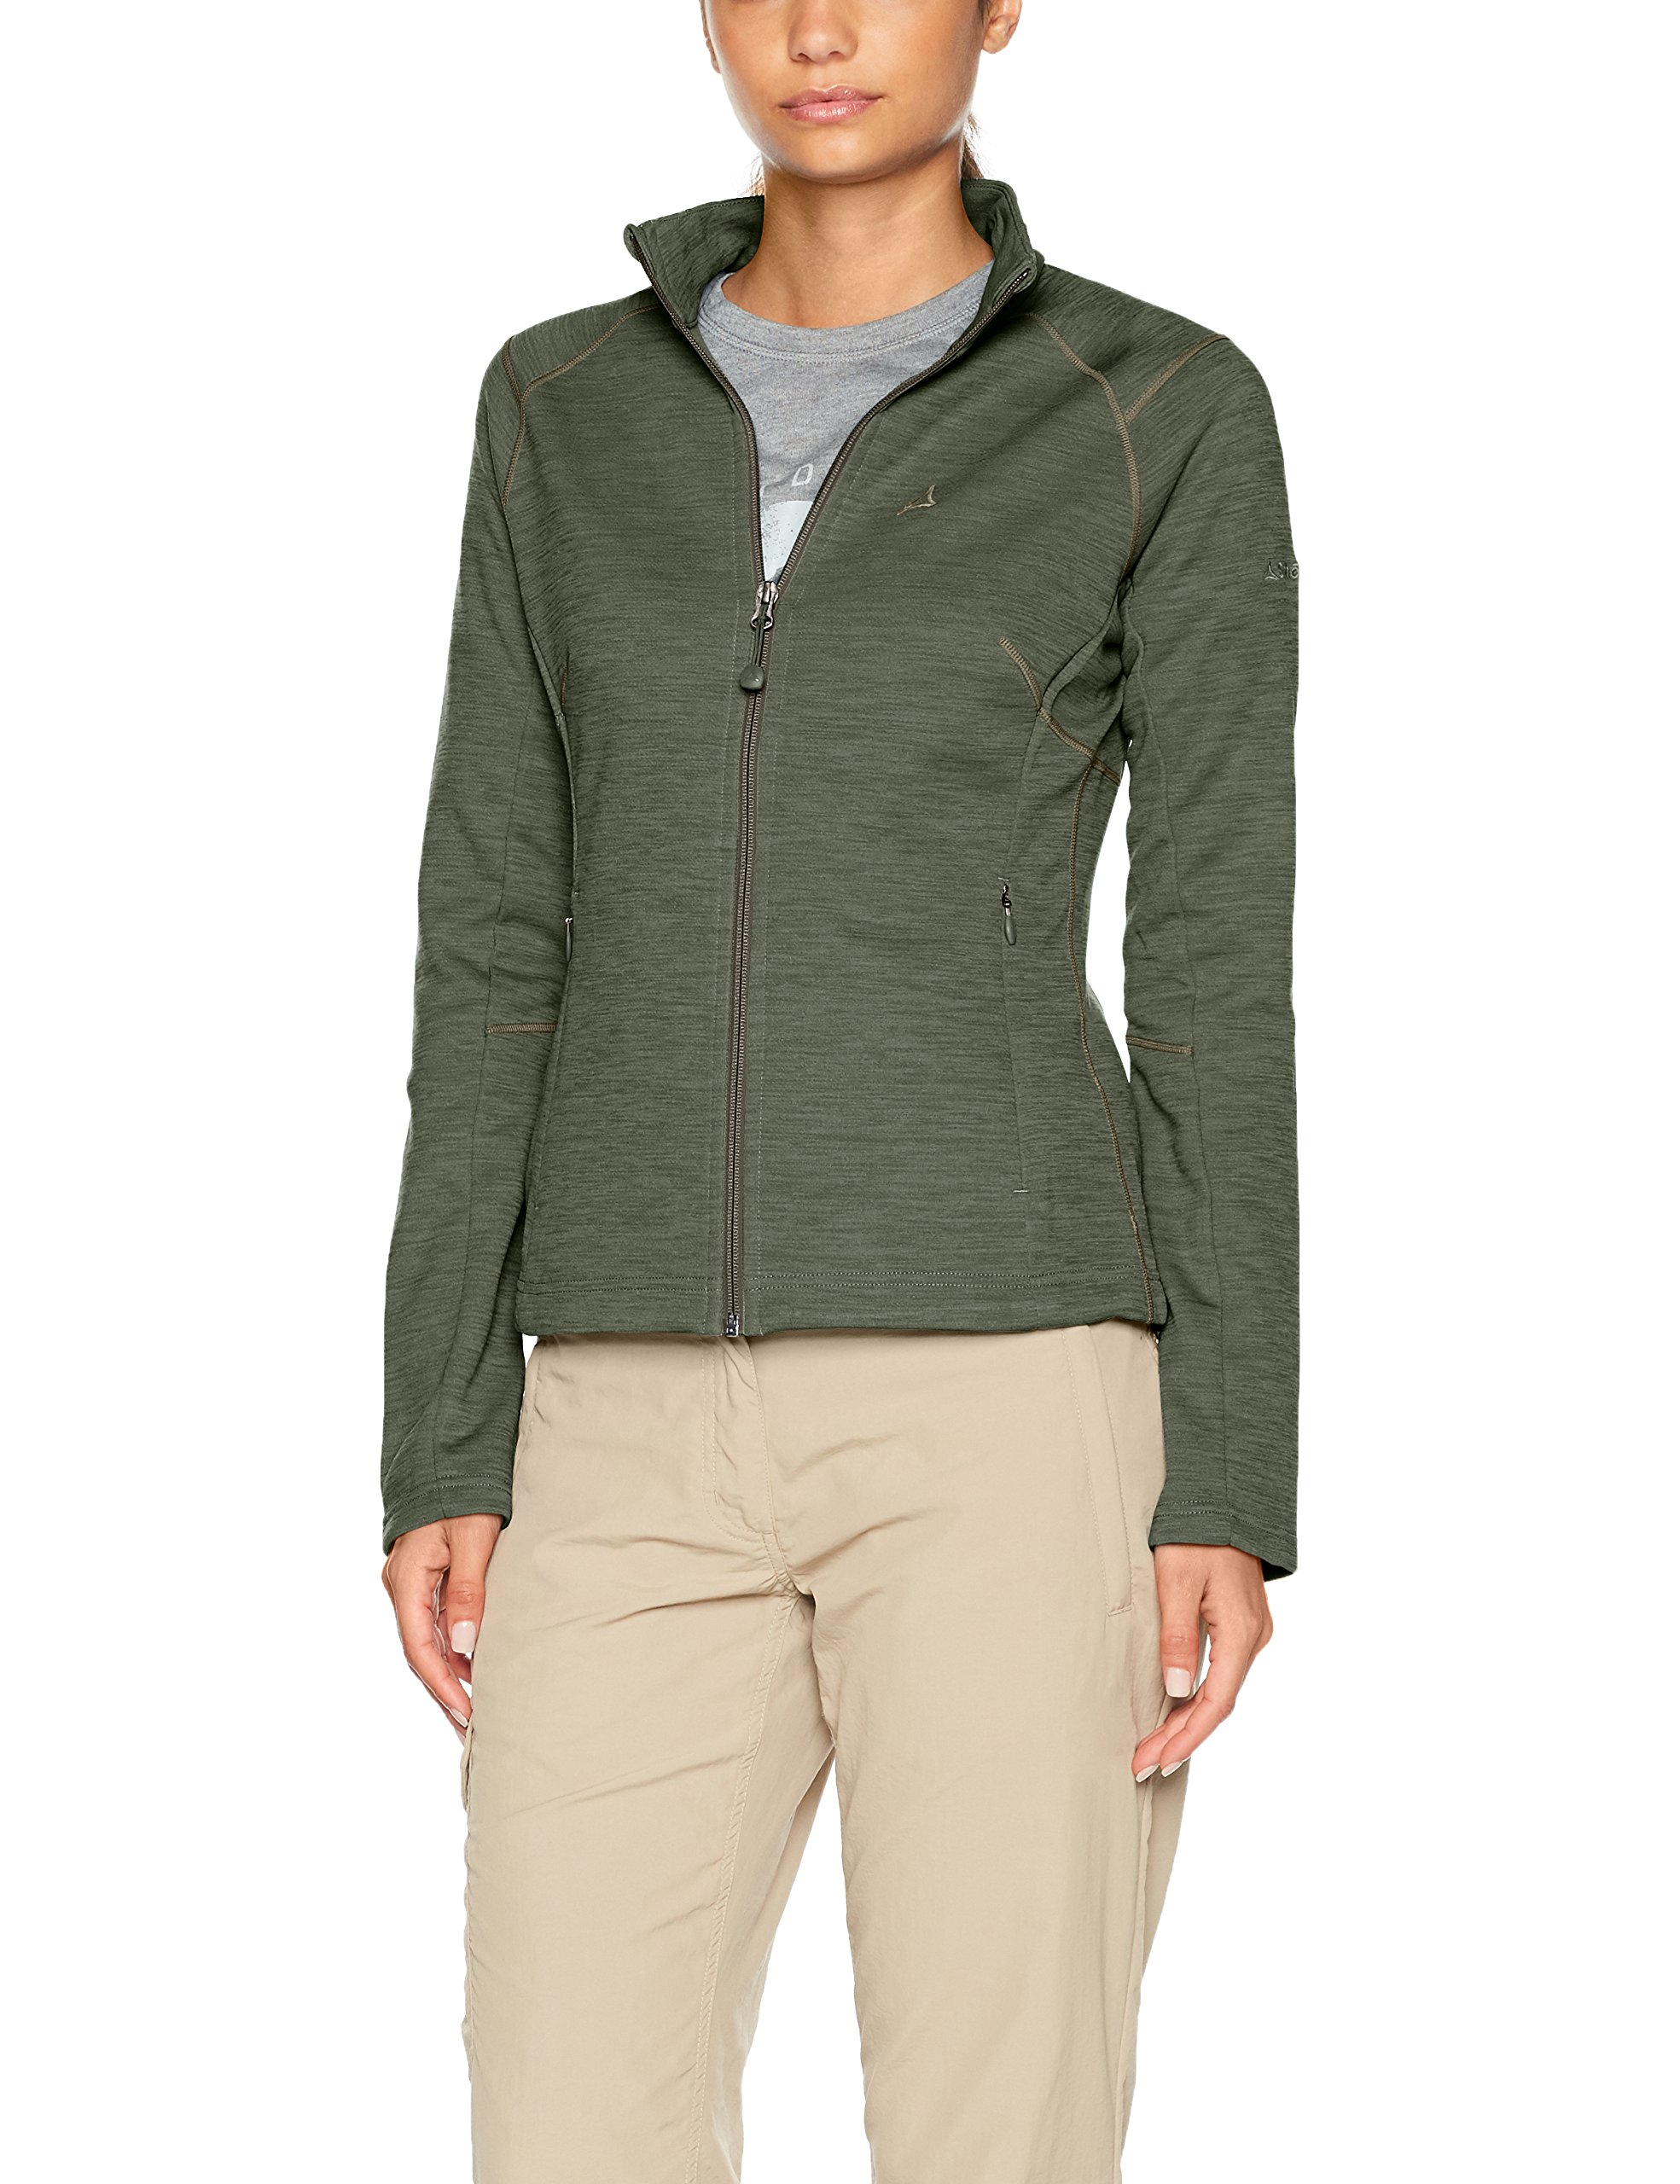 812PnSJOBfL - Schöffel Women's Nagoya Fleece Jacket